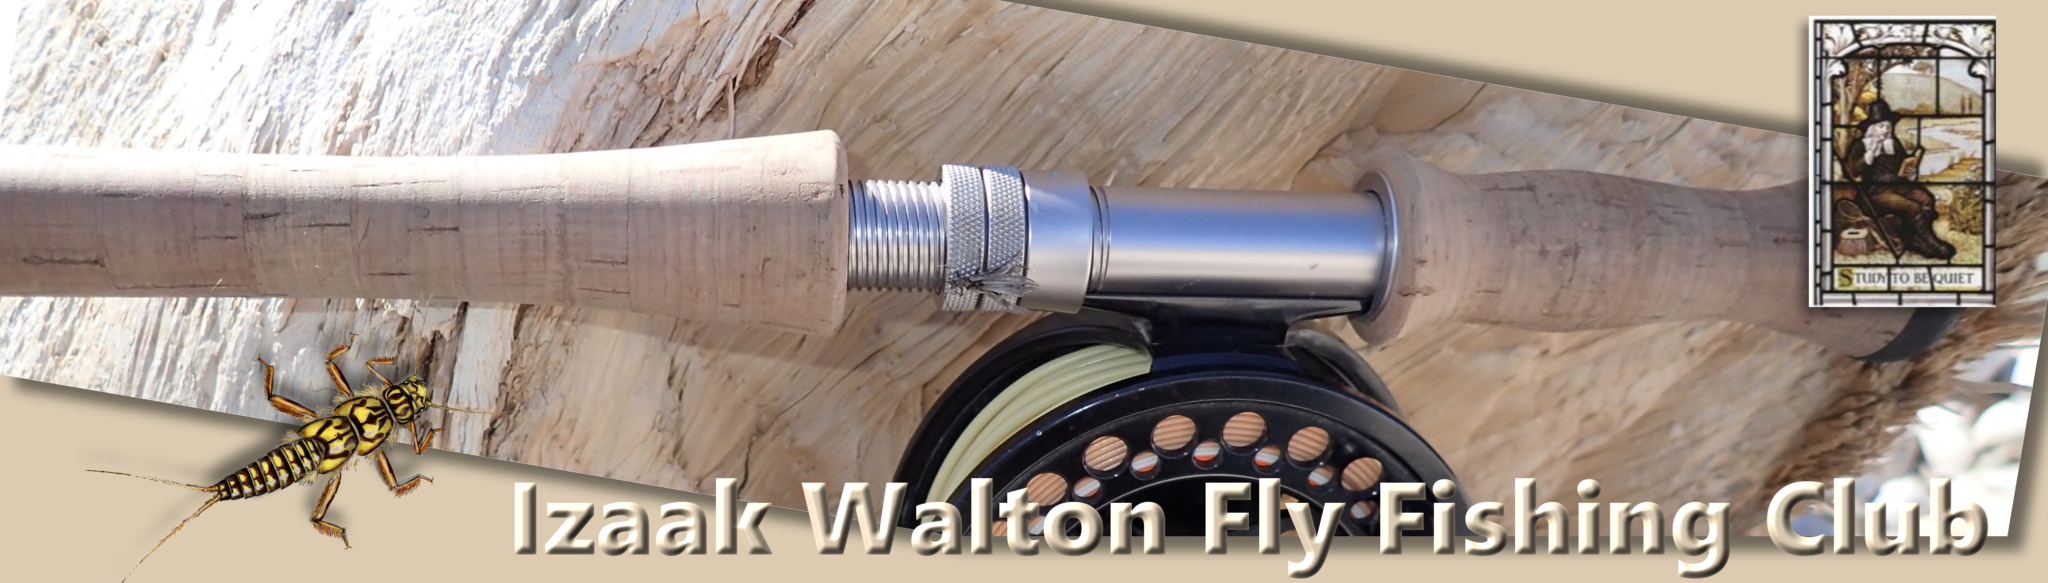 Izaak Walton Fly Fishing Club